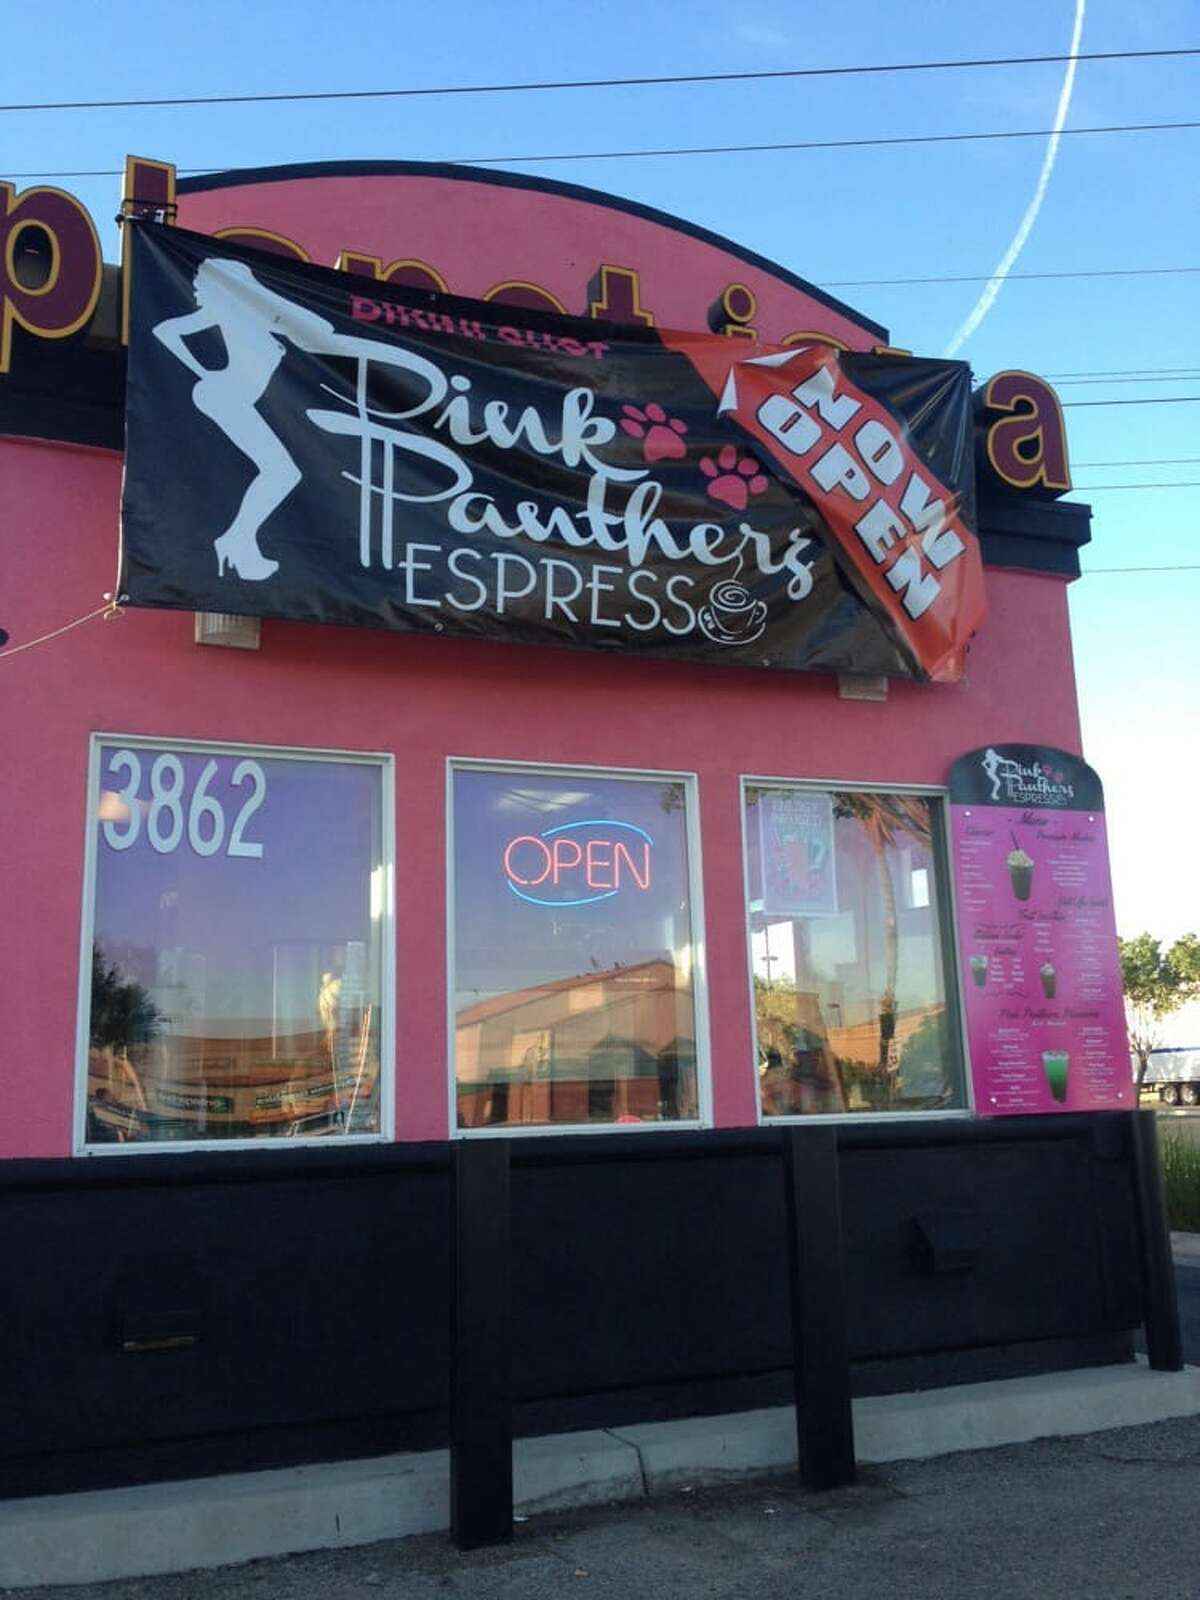 The Pink Pantherz location in Fresno. Click through the gallery for more photos. NOTE: Some photos contain material some may find explicit.